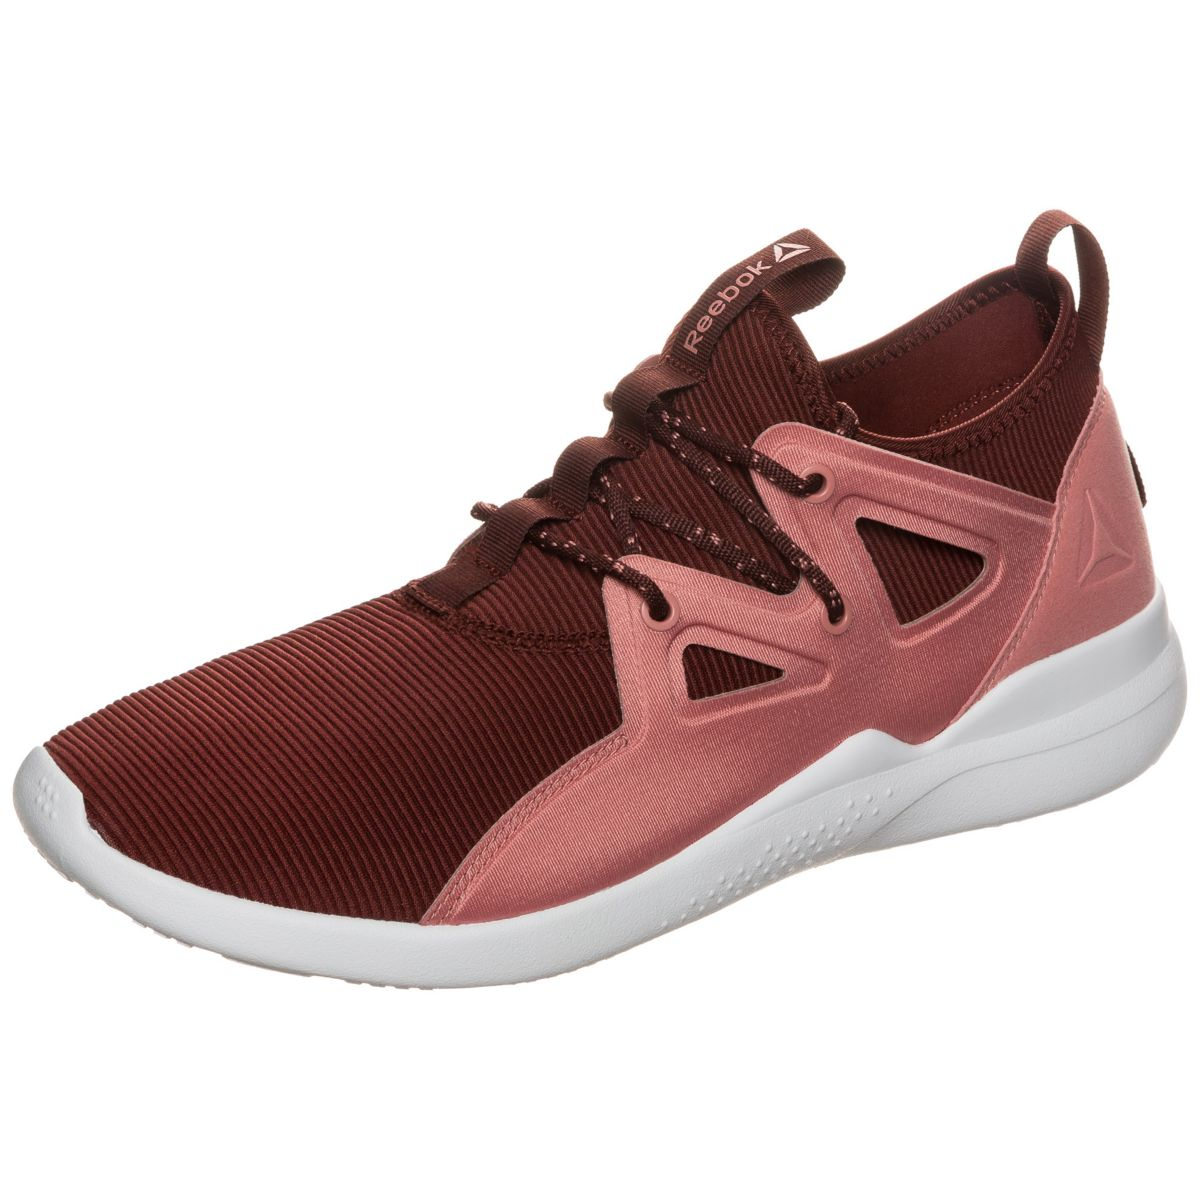 Reebok Trainingsschuh �Cardio Motion�